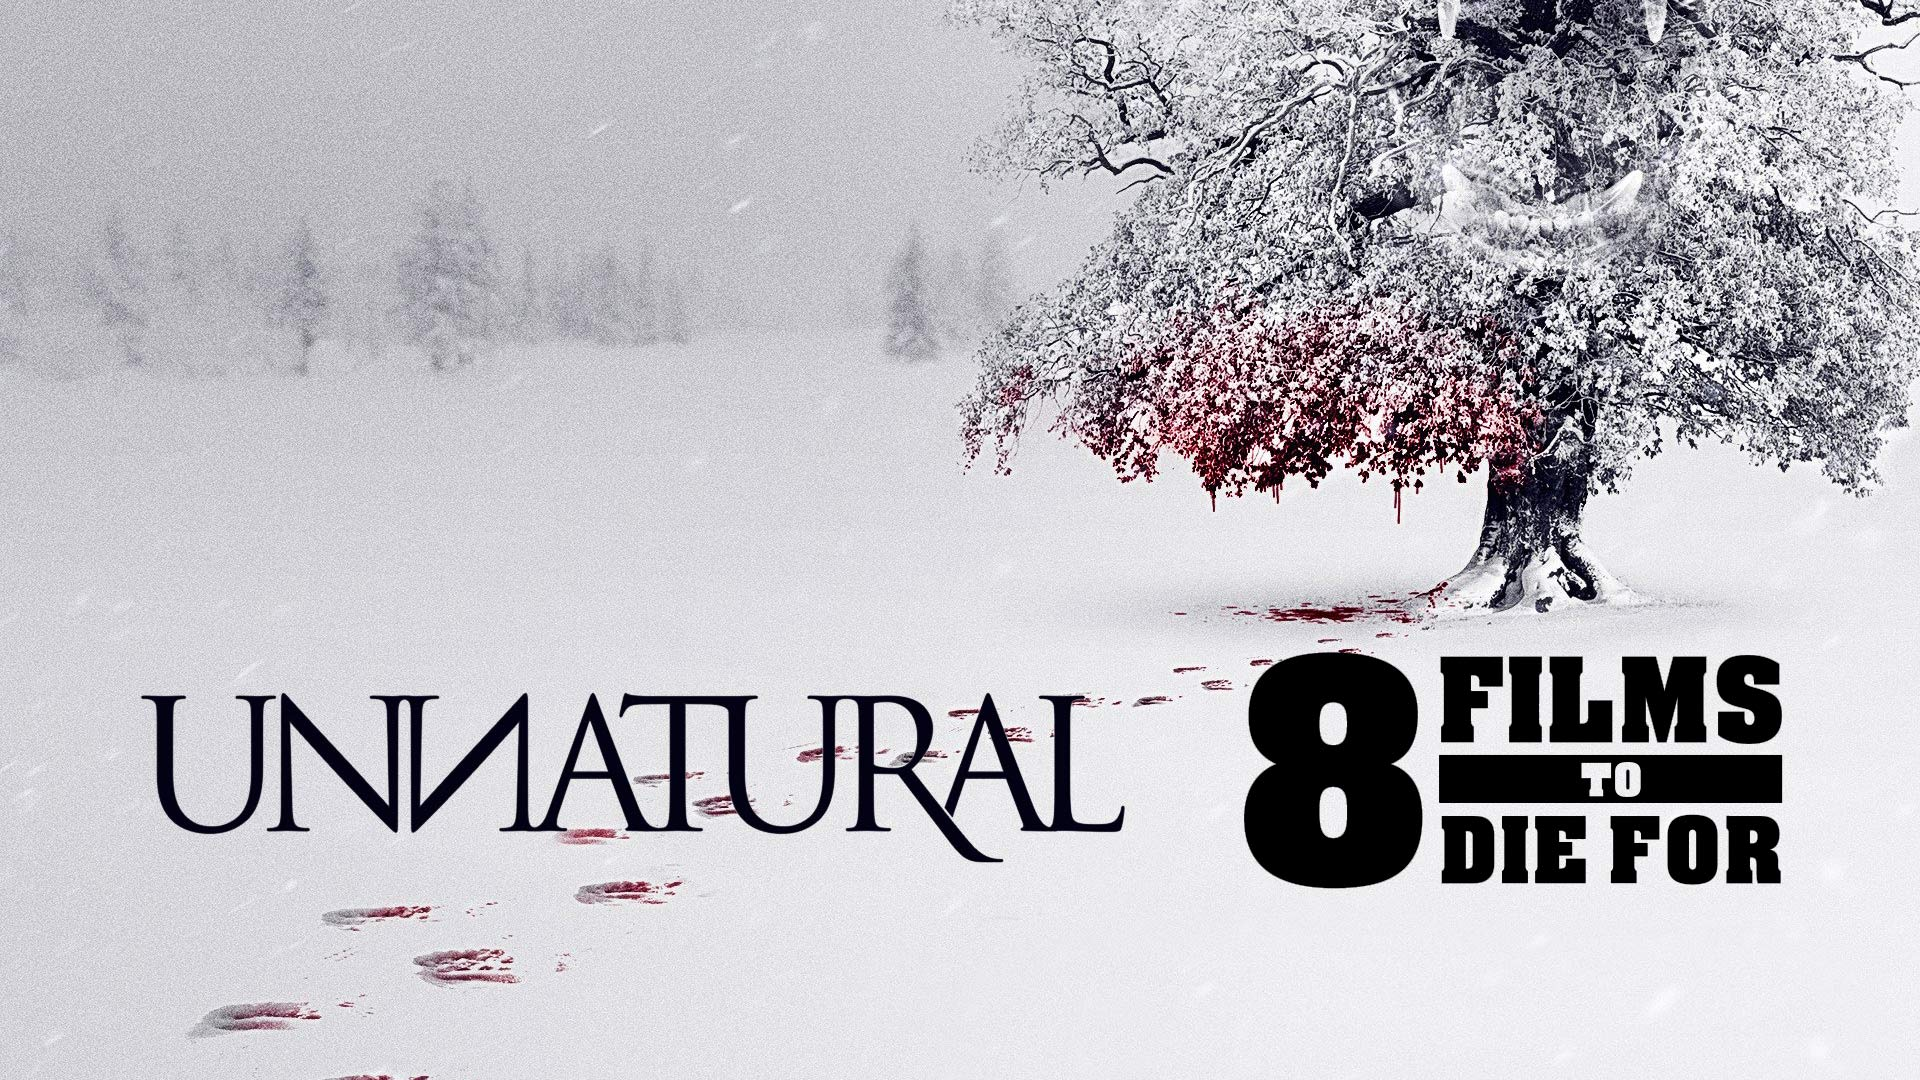 8 Films To Die For: Unnatural